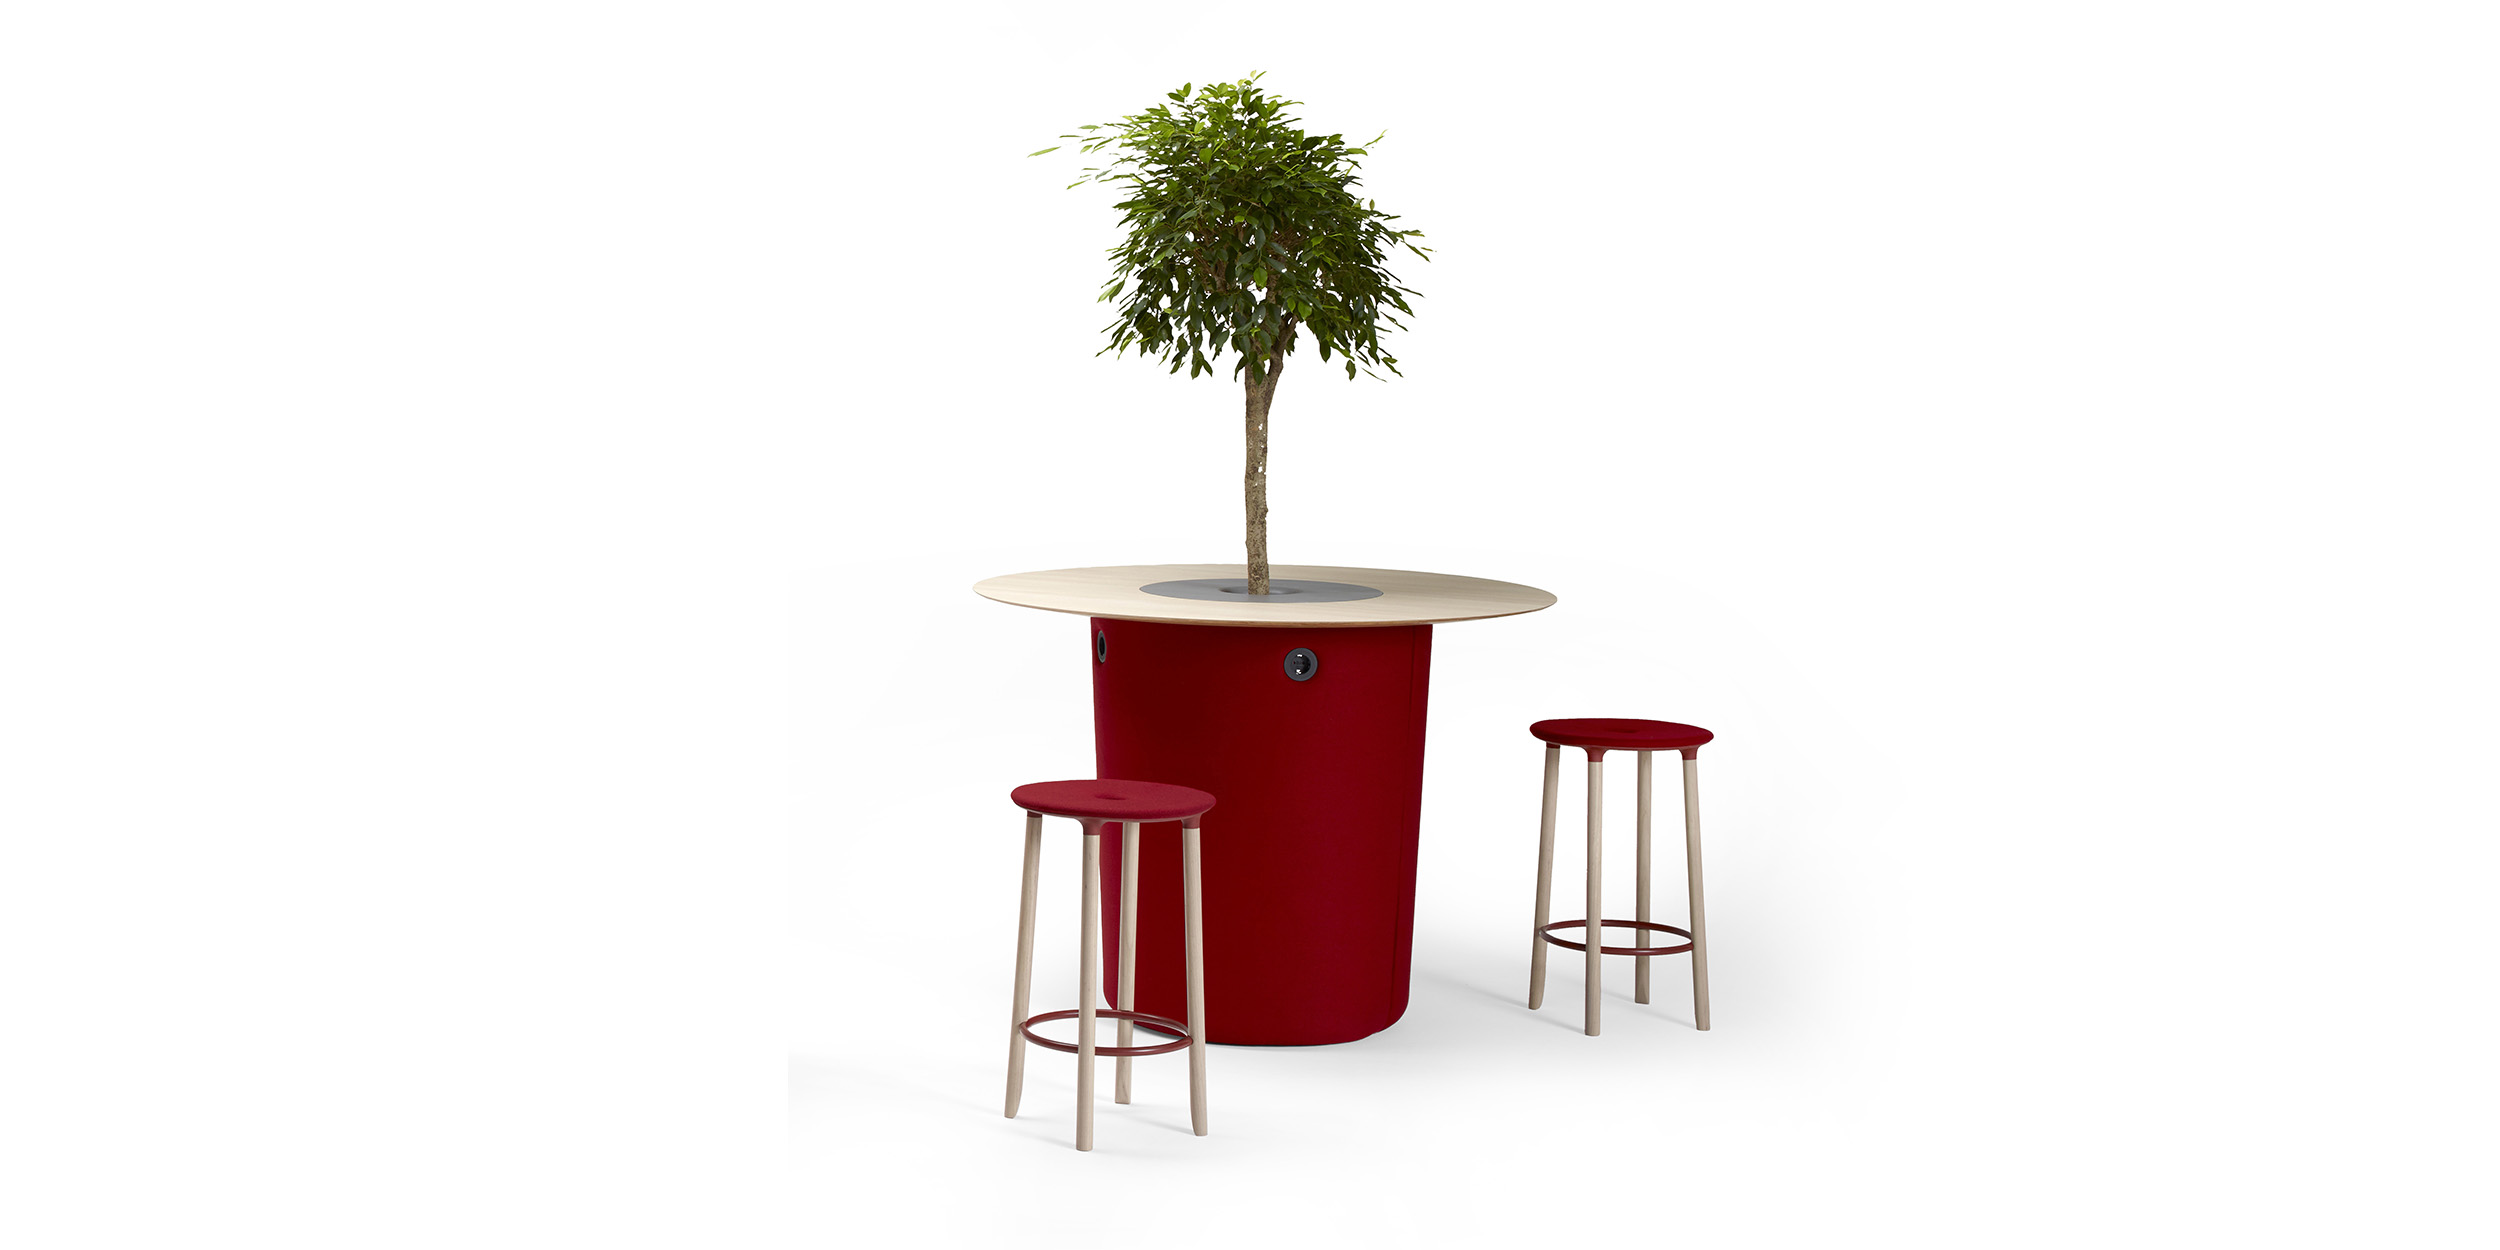 Move On Low, Bar stool by Mattias Stenberg